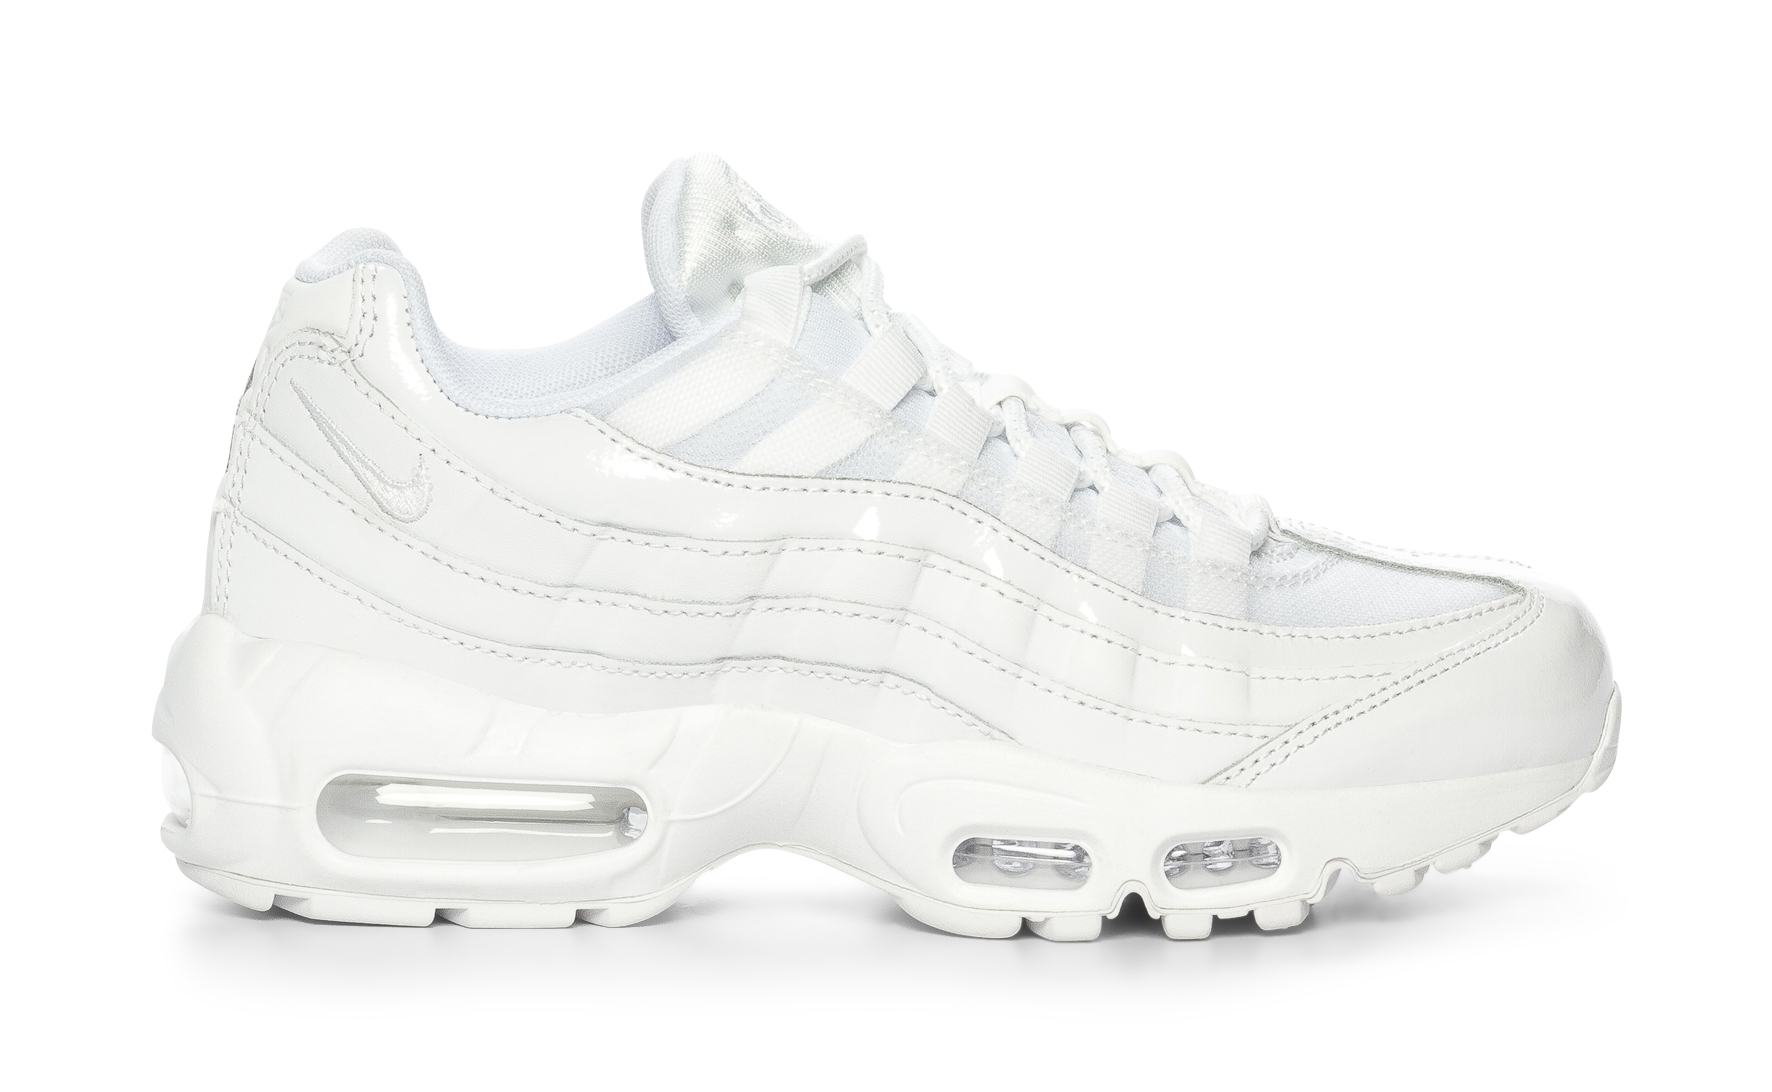 on sale 37758 ee660 Nike Air Max 95 - Valkoinen 314034 feetfirst.fi